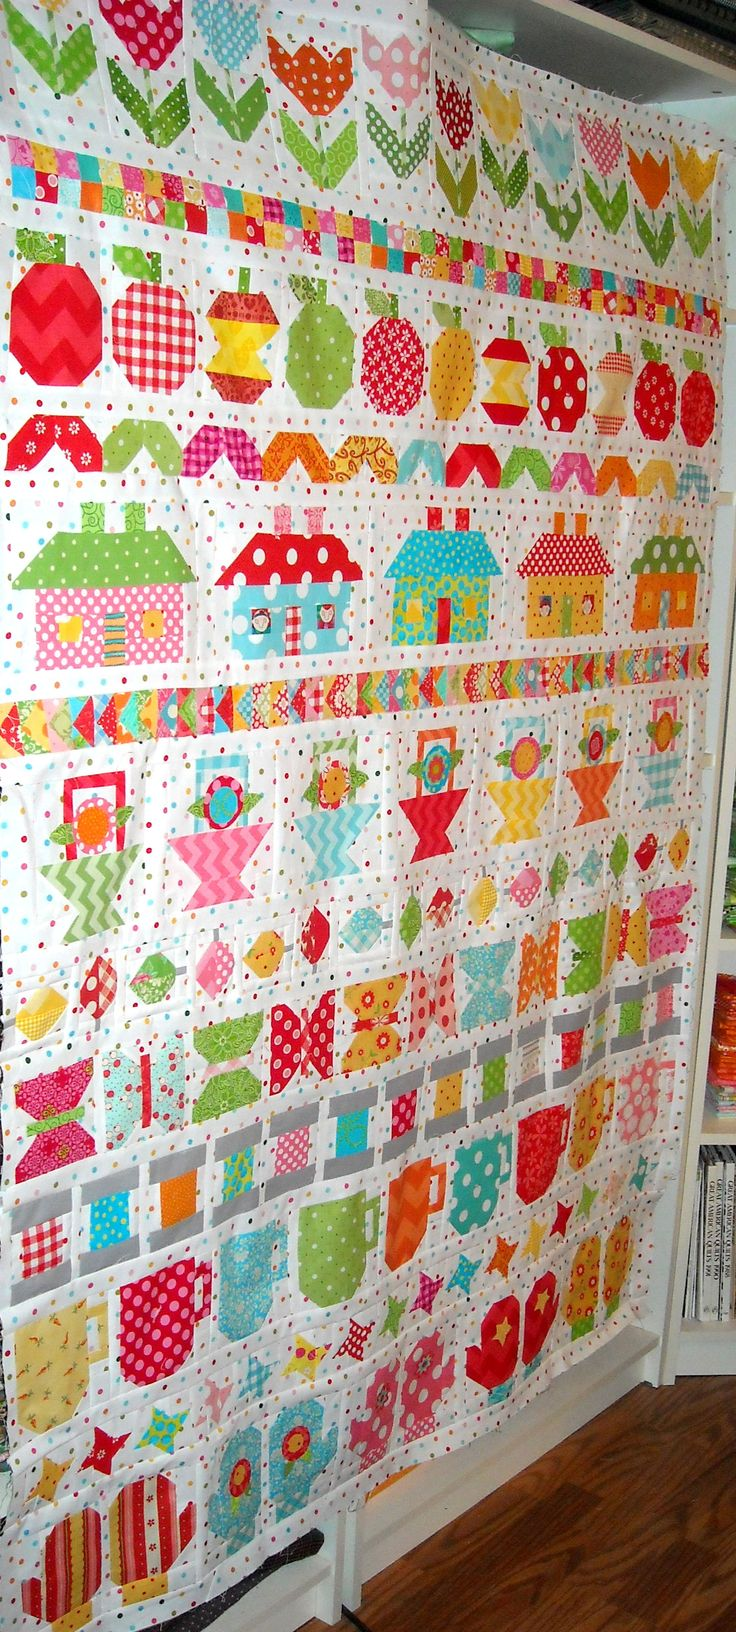 Row Along quit before borders ~ I absolutely LOVE this quilt ♥♥♥